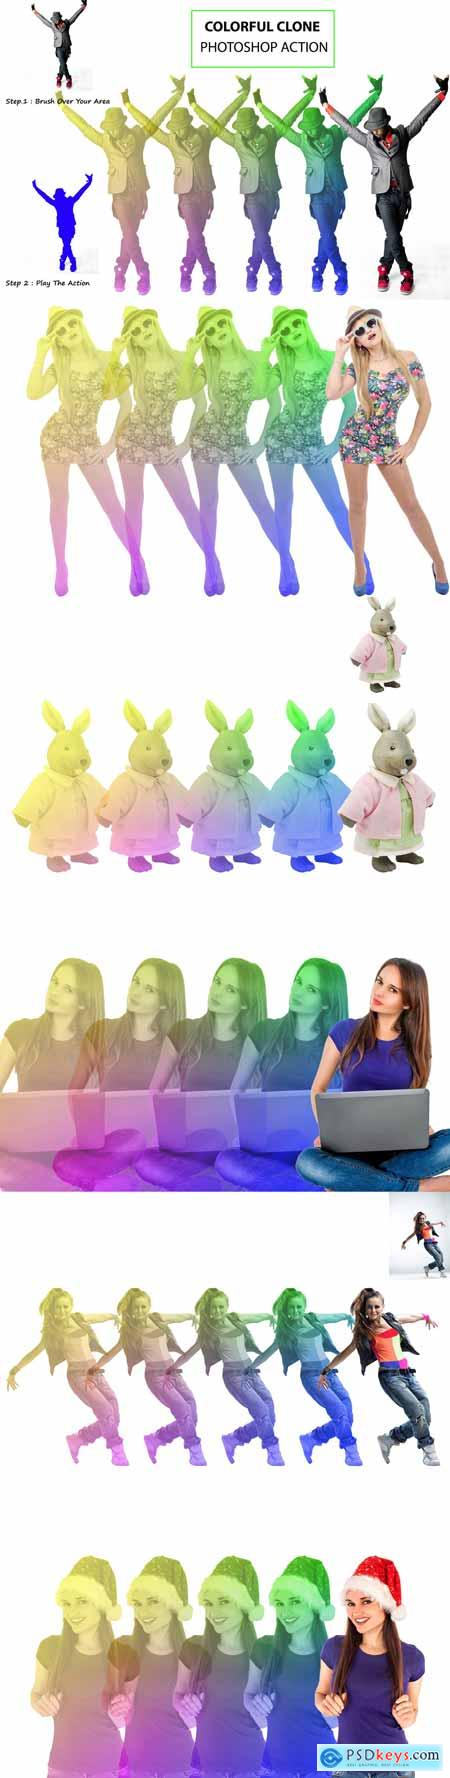 Colorful Clone Photoshop Action 3163427